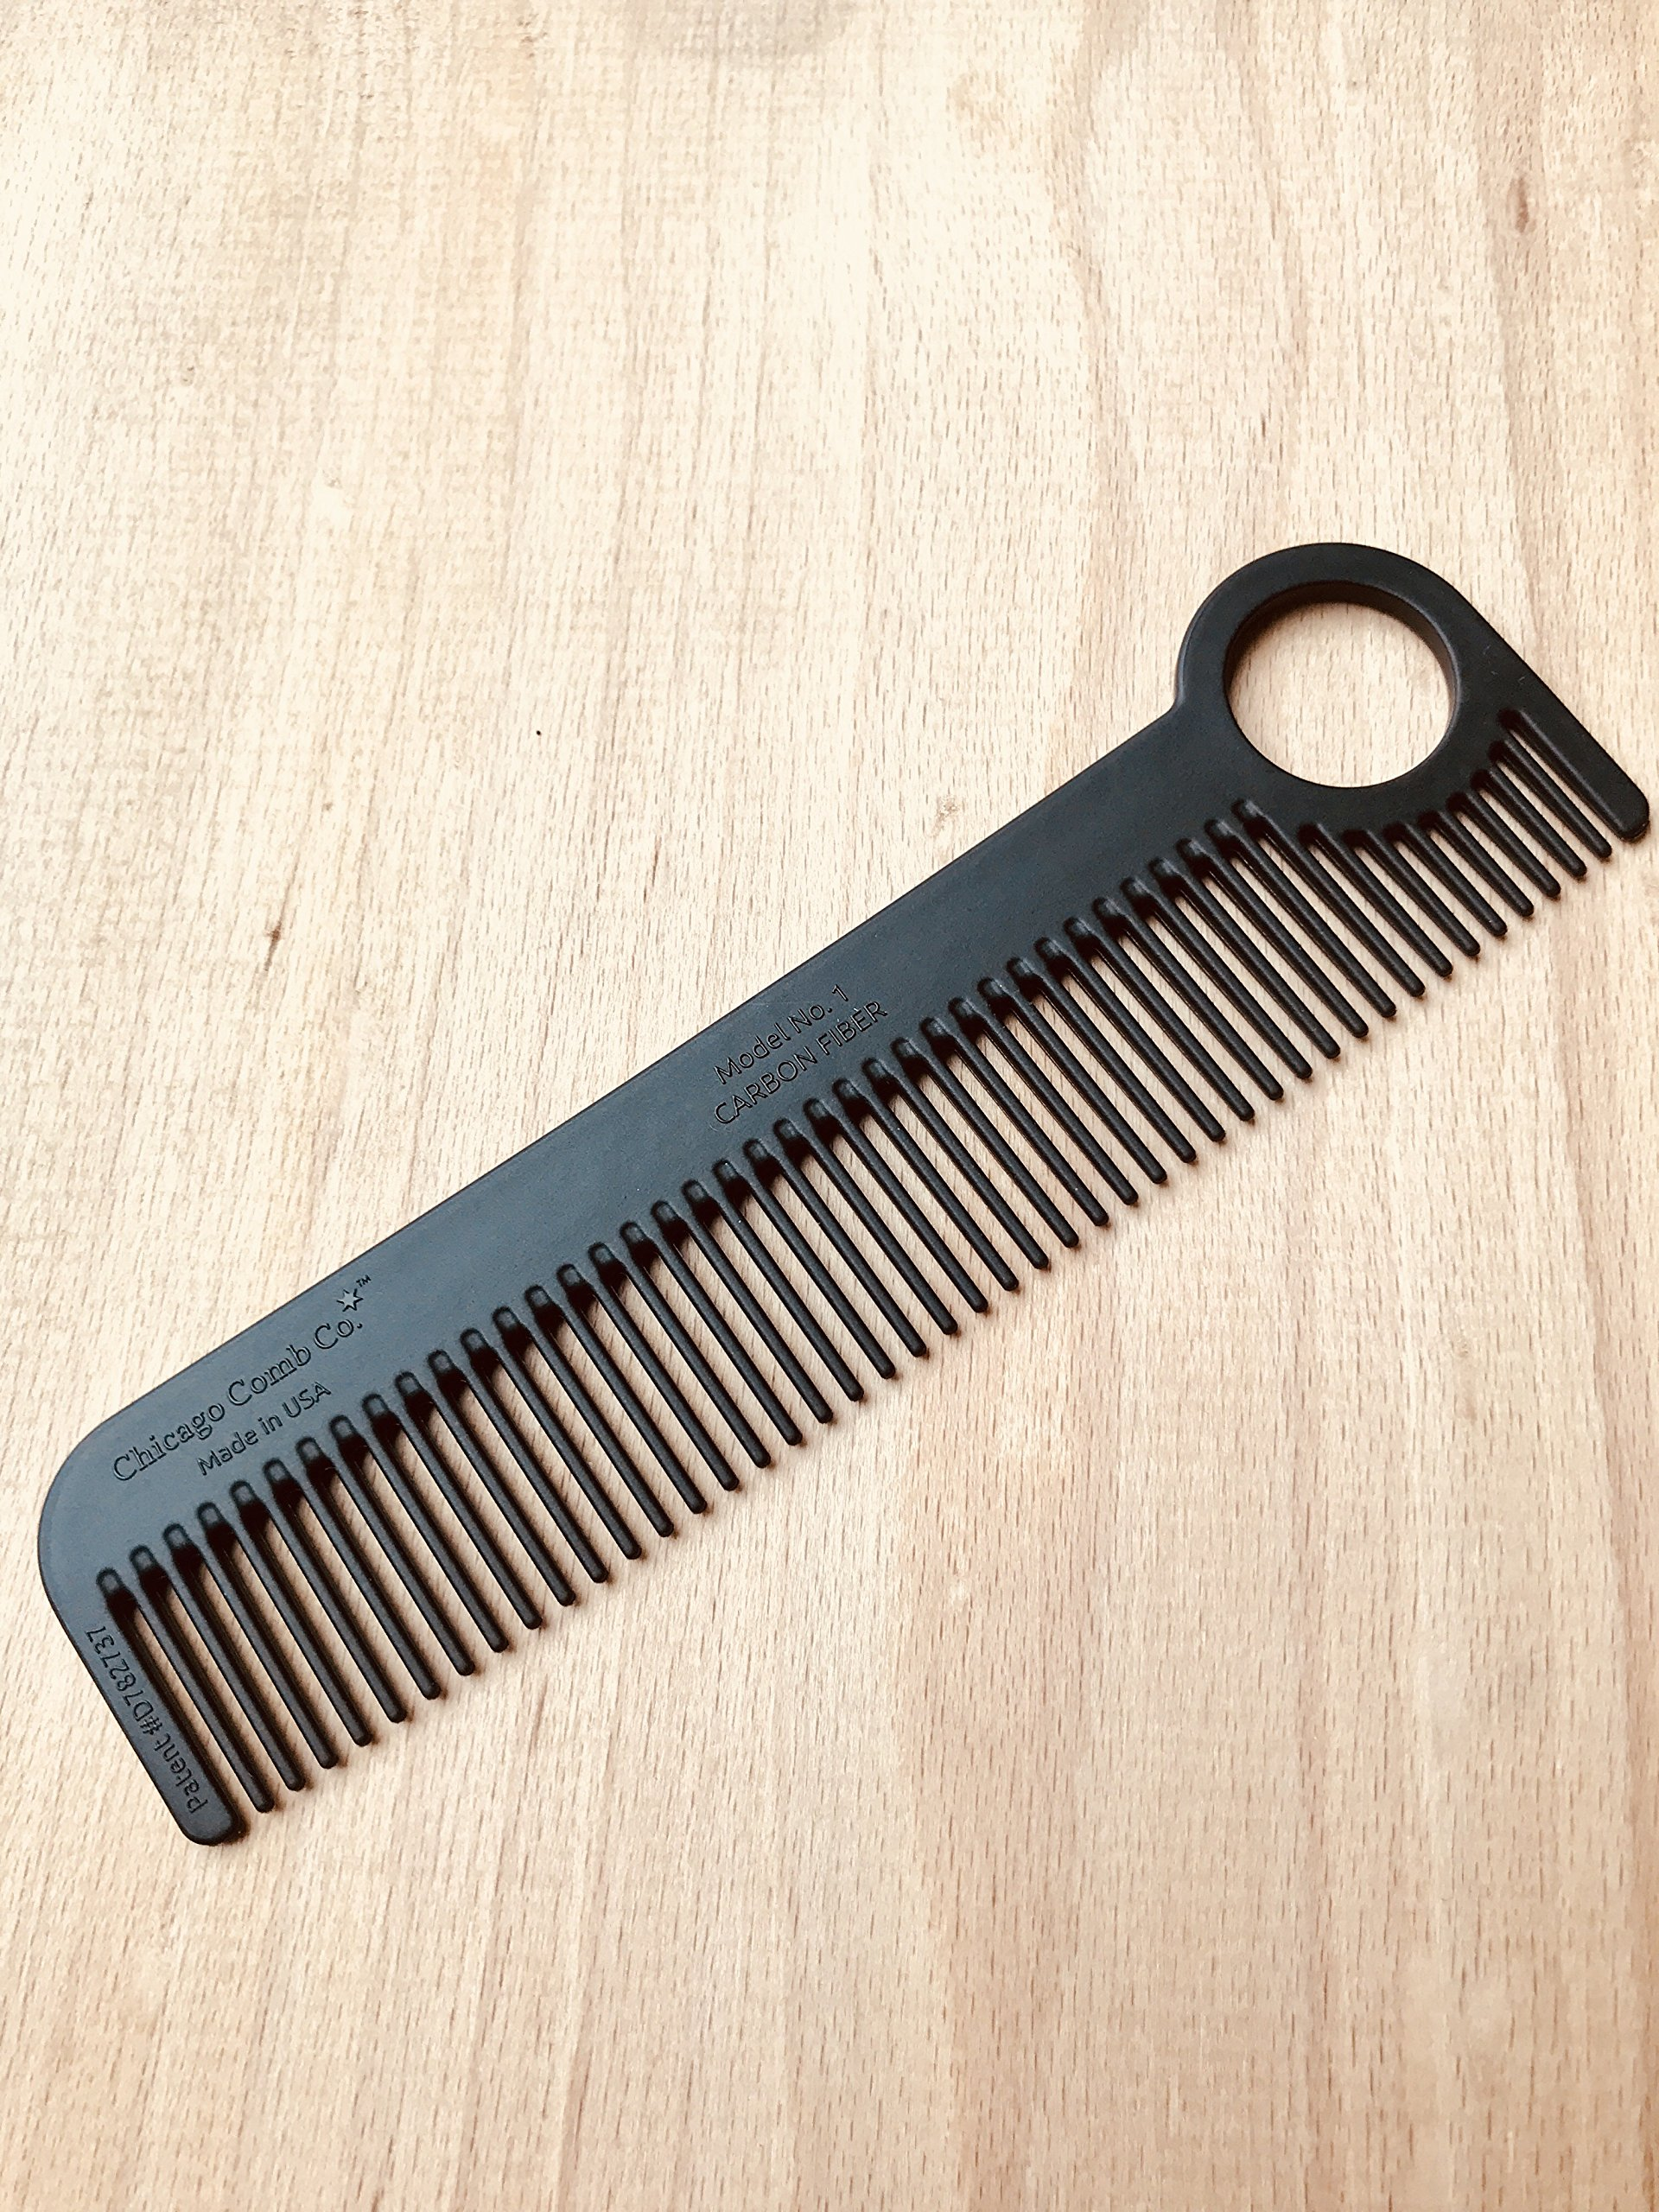 Chicago Comb Model 1 Carbon Fiber, Made in USA, ultra smooth, strong, and light, anti-static, heat-resistant, 5.5 inches (14 cm) long, ultimate daily use, pocket, and travel comb by Chicago Comb (Image #5)